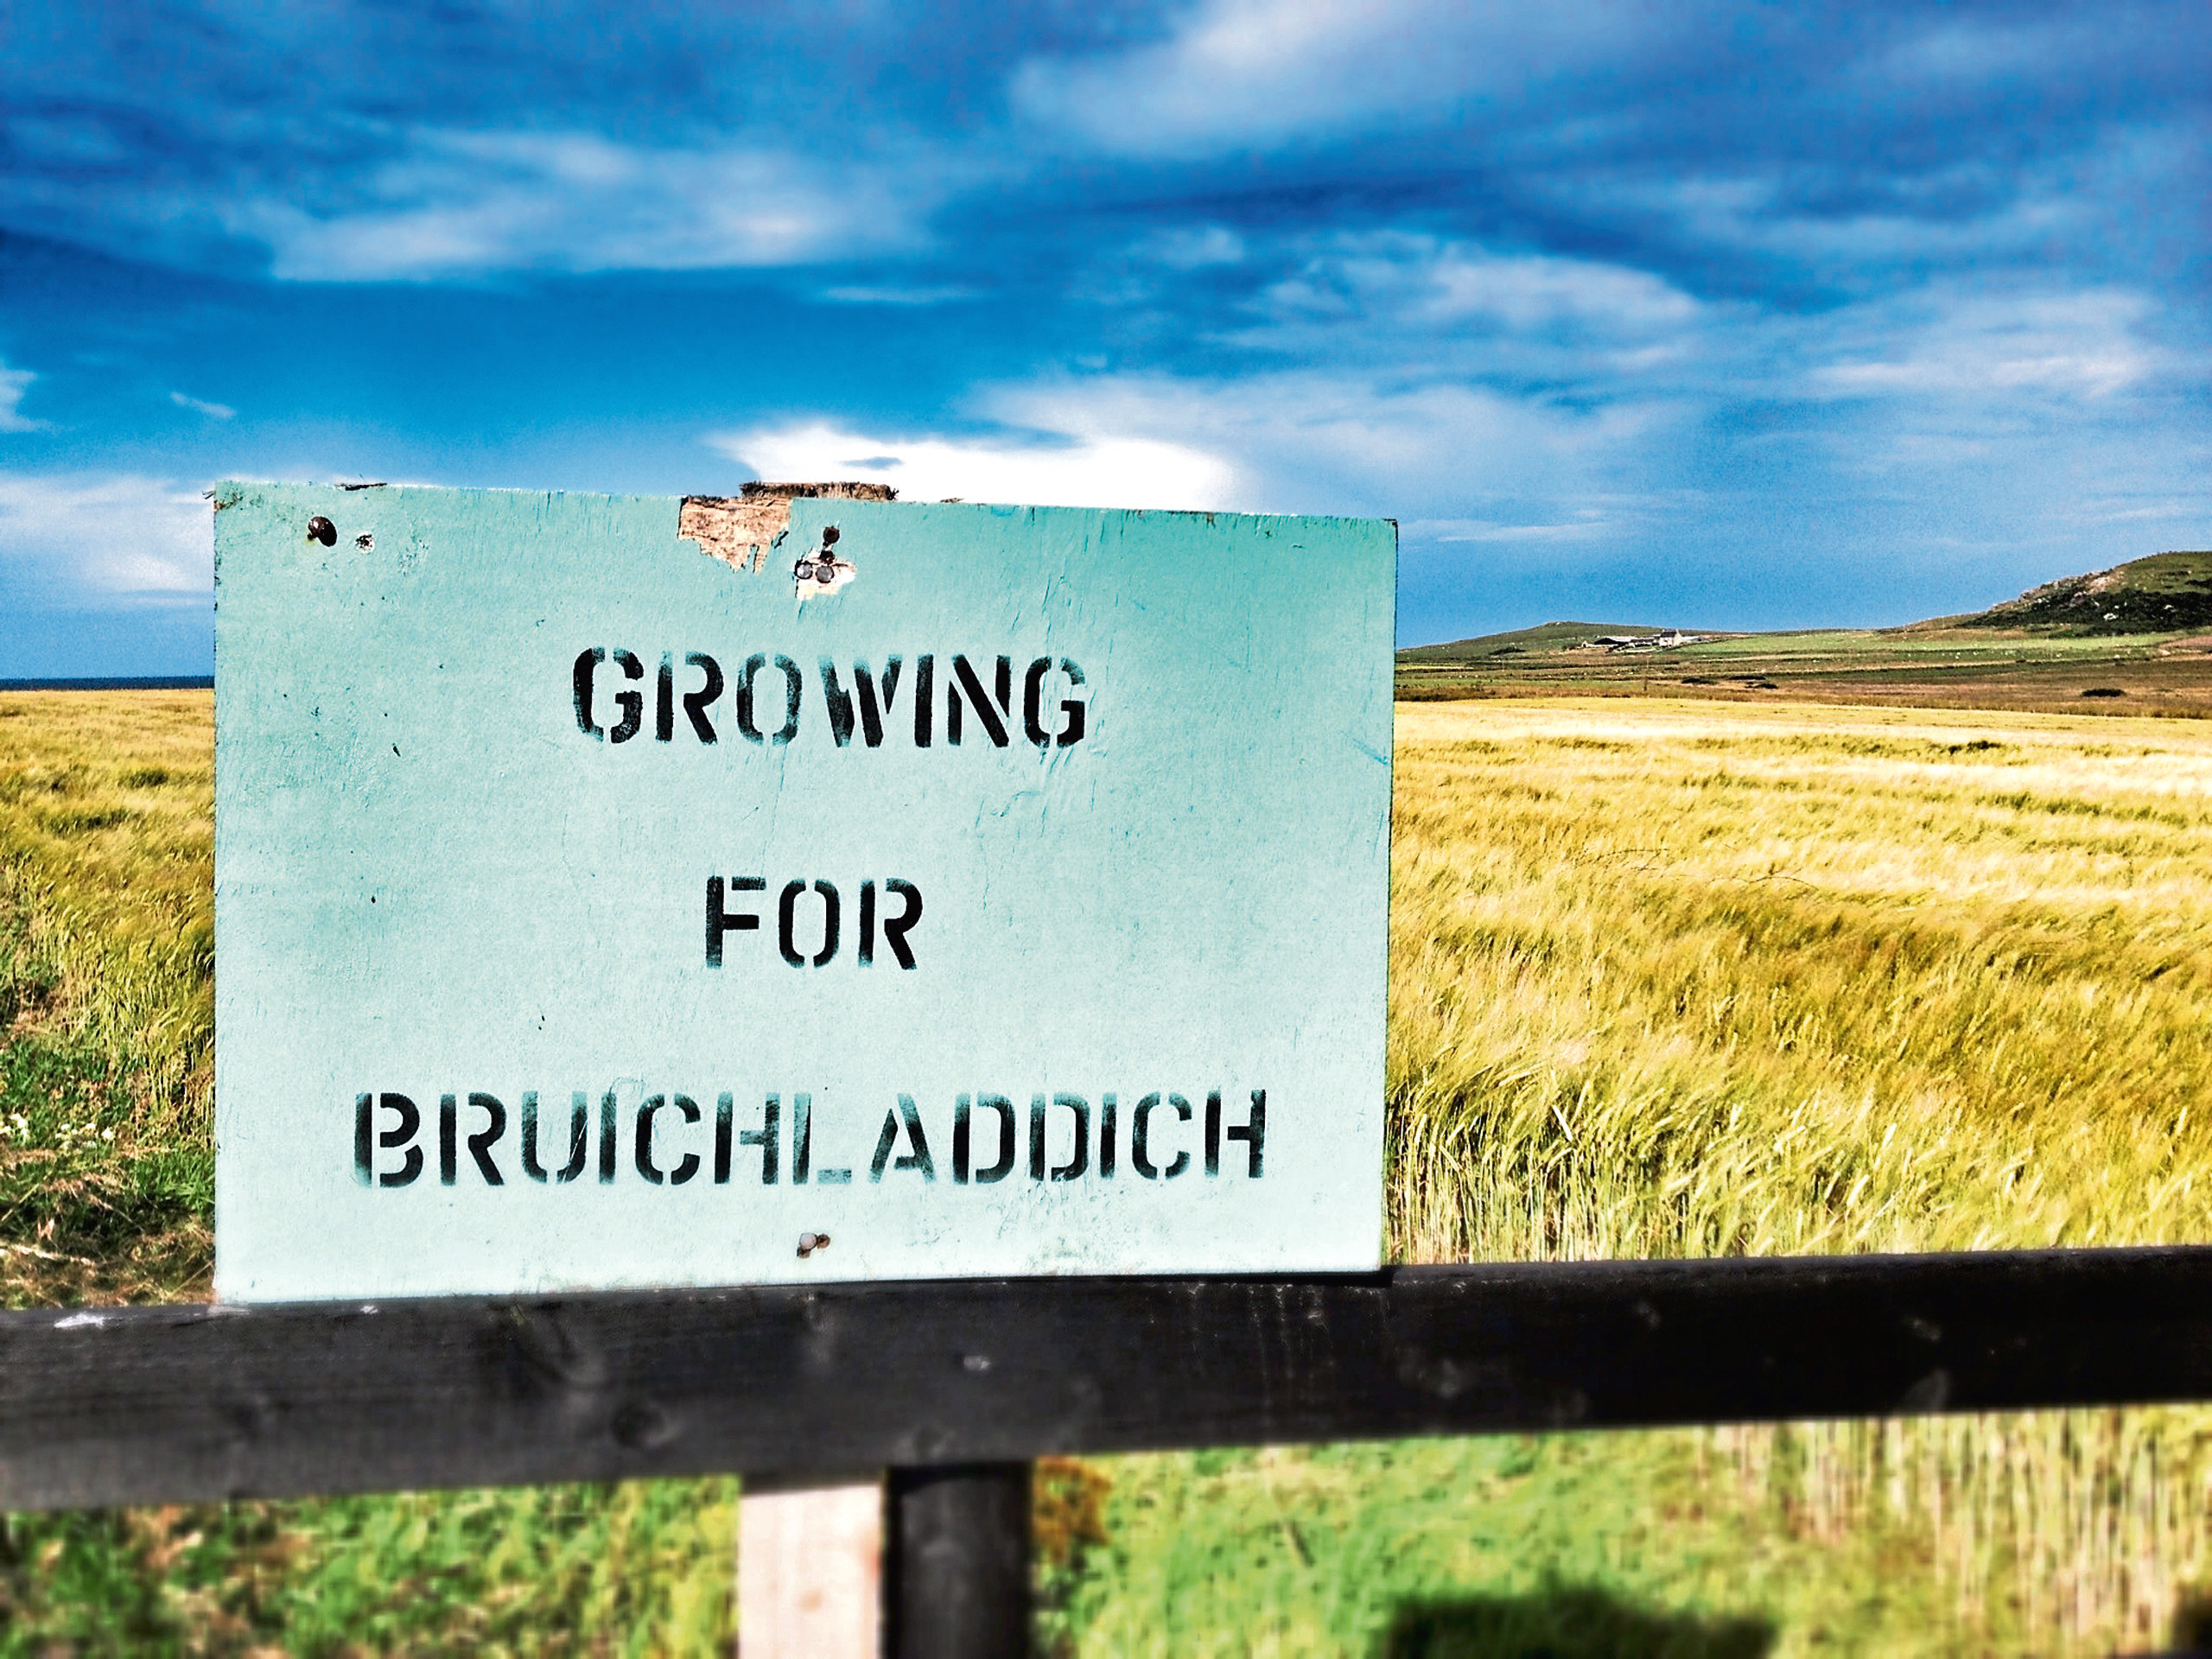 Bruichladdich sources 100% Scottish grain for its whisky.